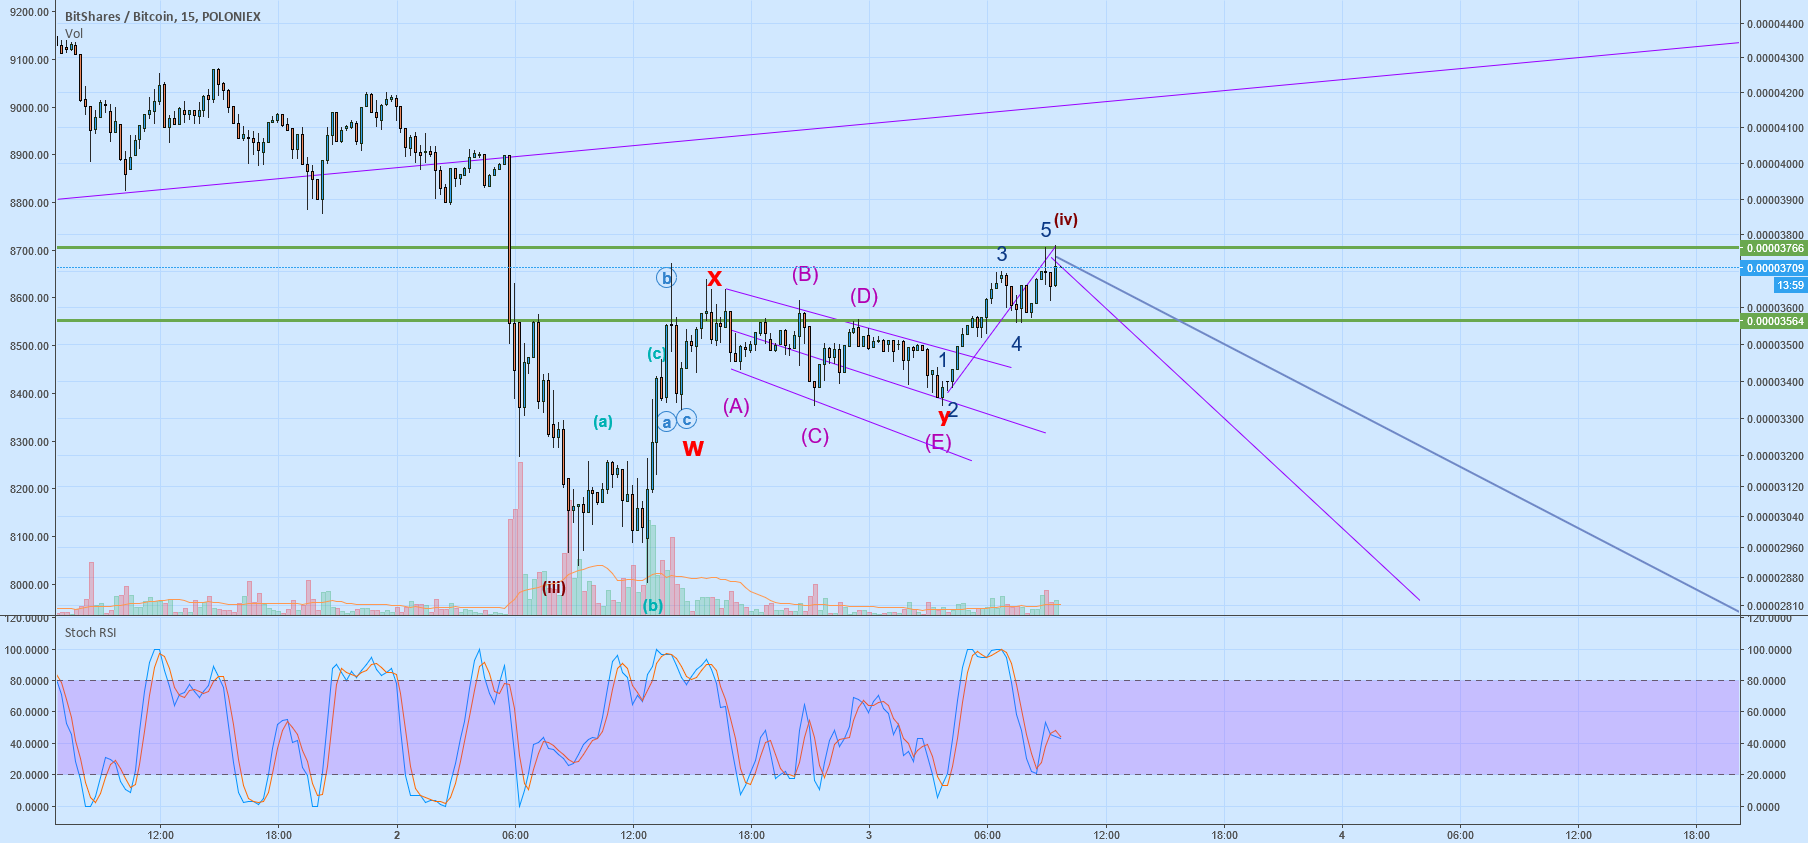 Correction to previous chart Elliot wave